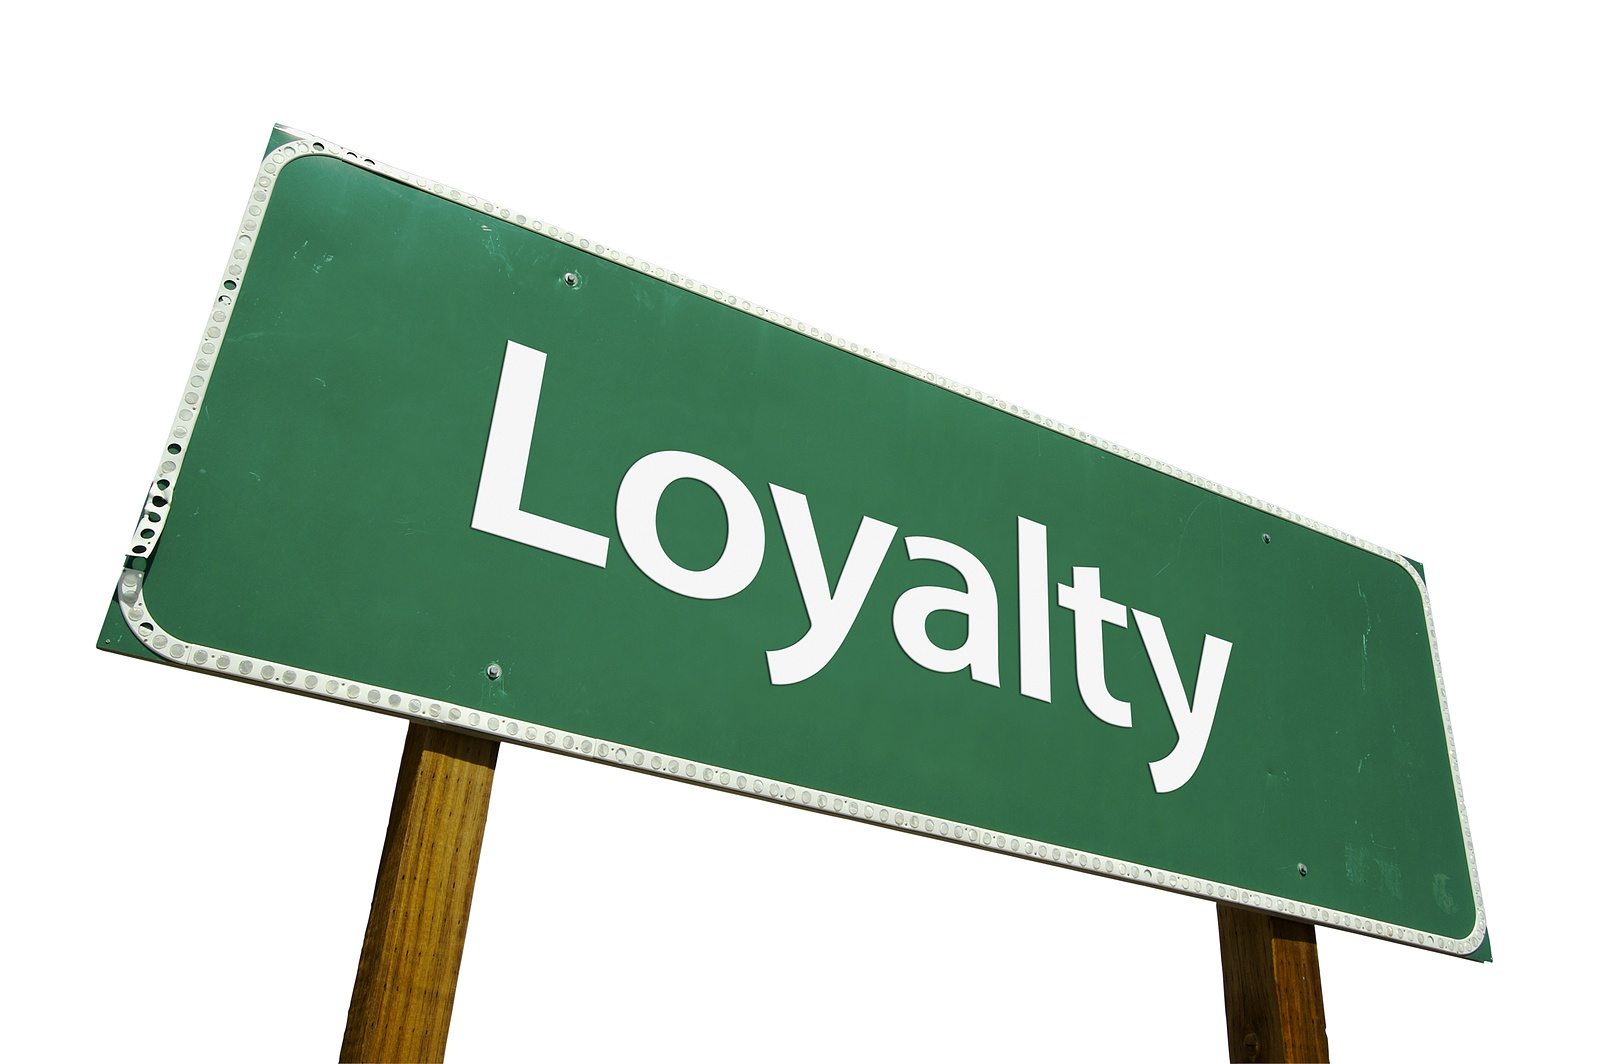 CustomerLoyalty_17Apr2014